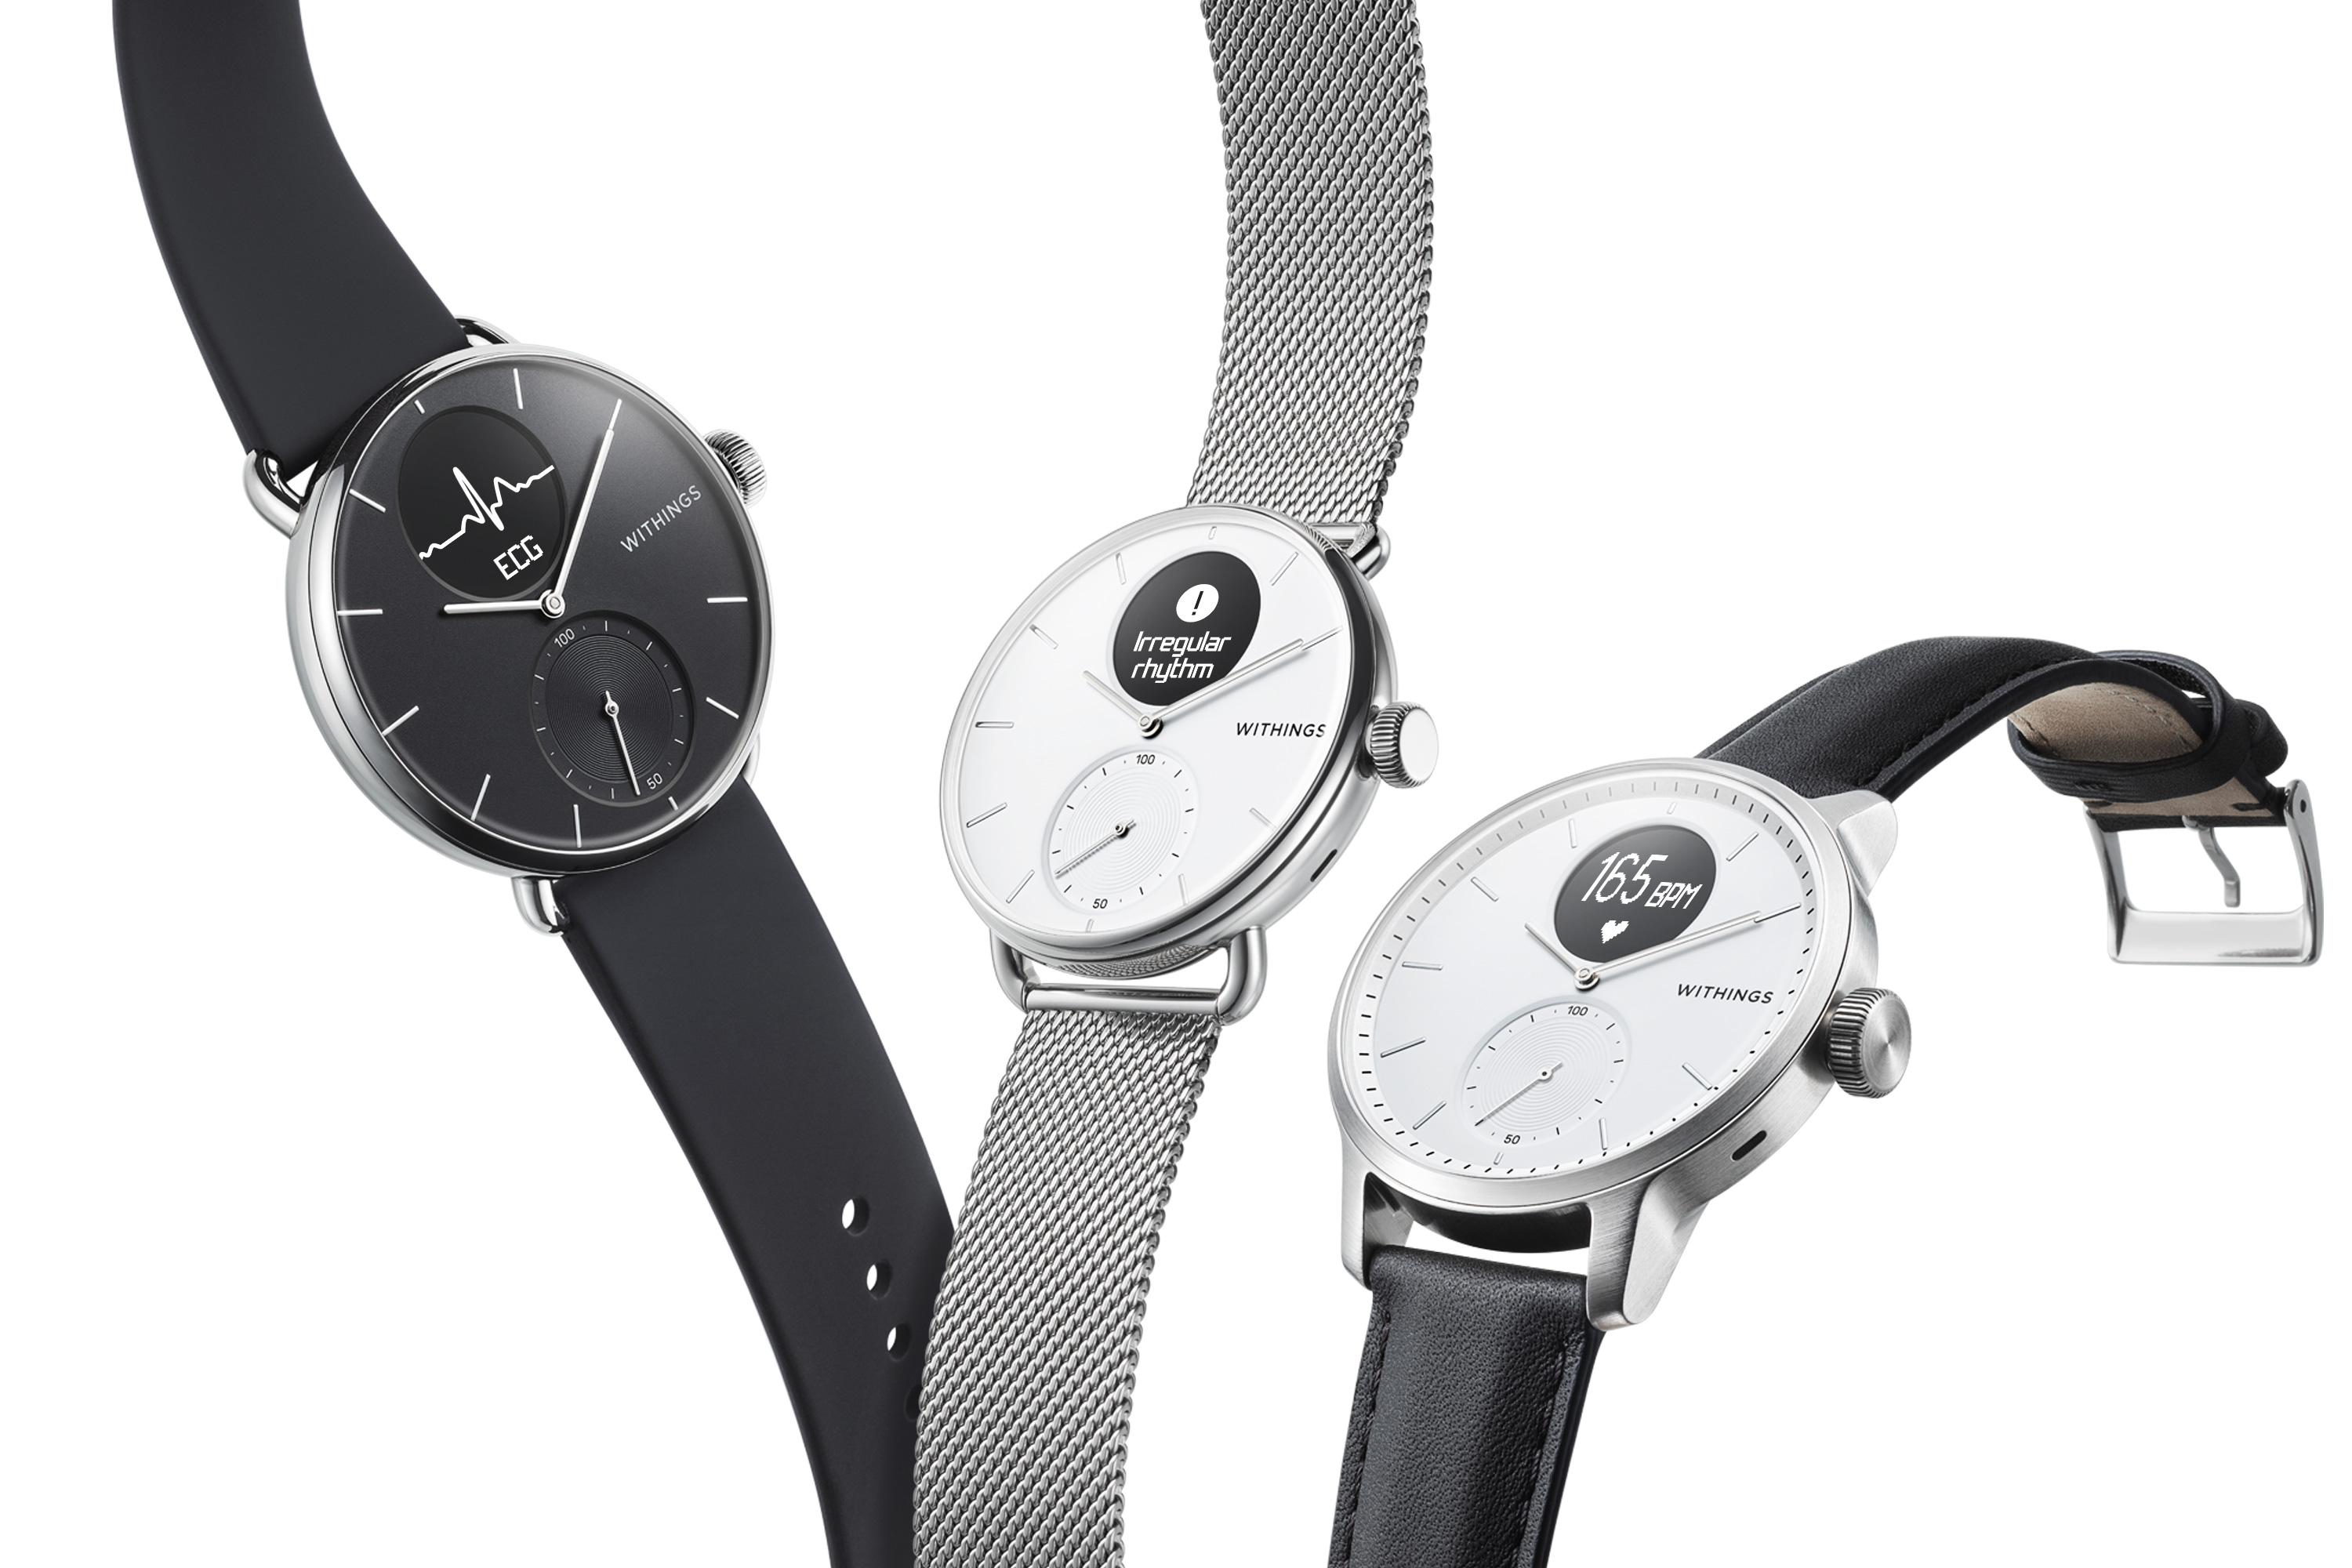 Ava Adams Trio Dale Porno withings says its latest watch can detect sleep apnea